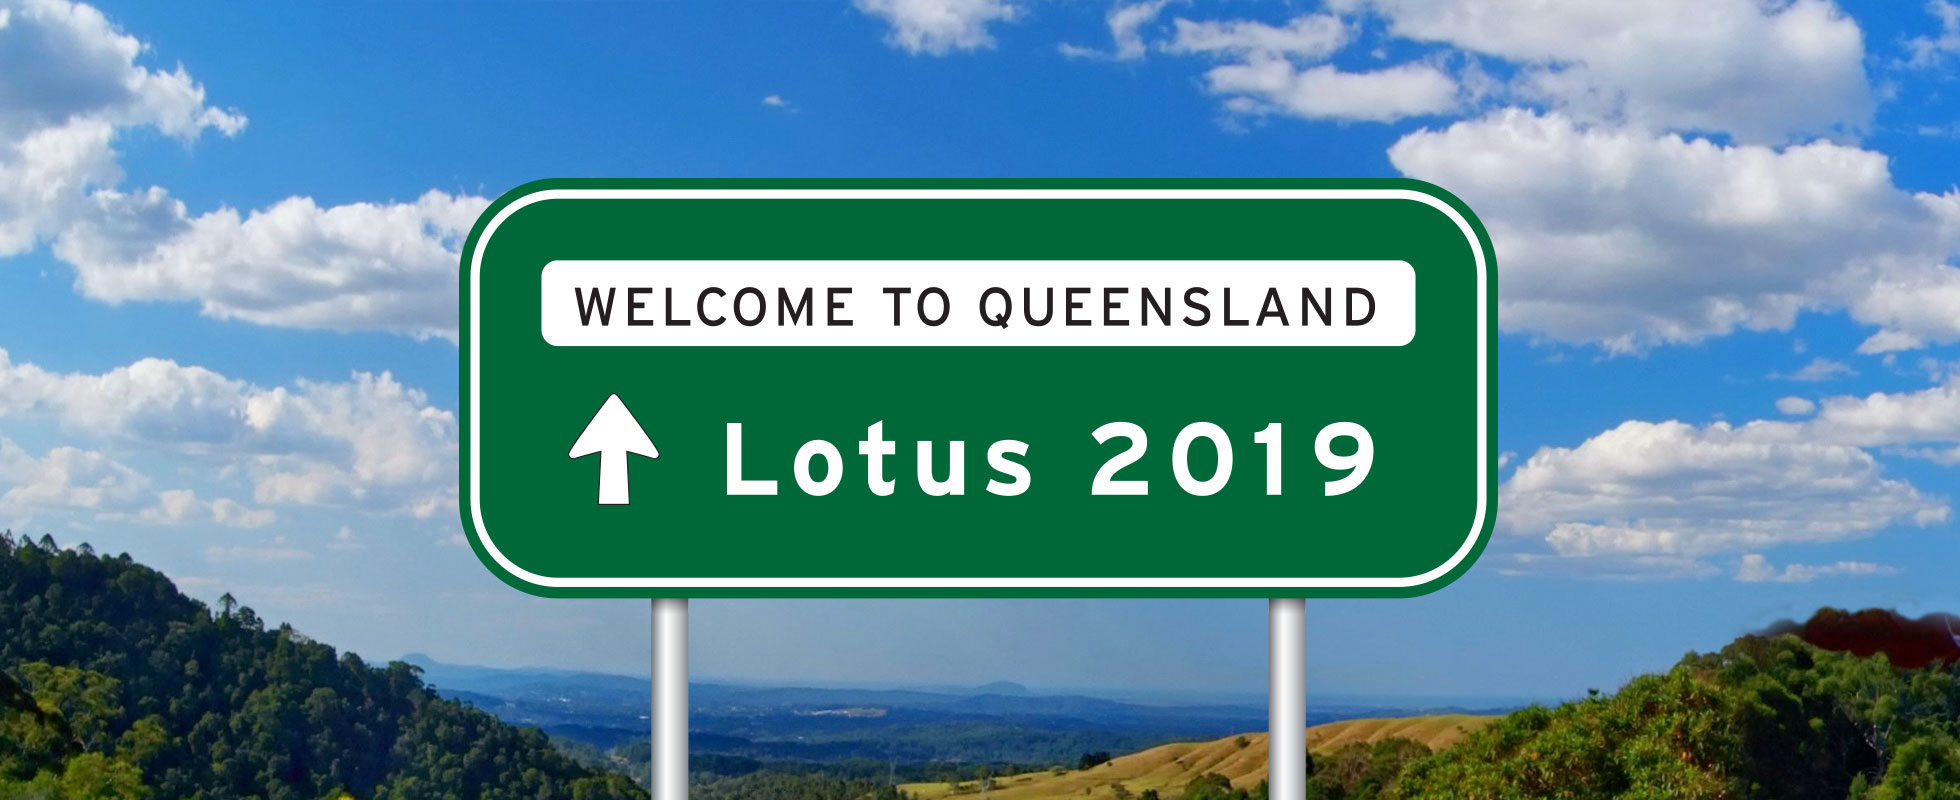 Don't miss Lotus 2019!